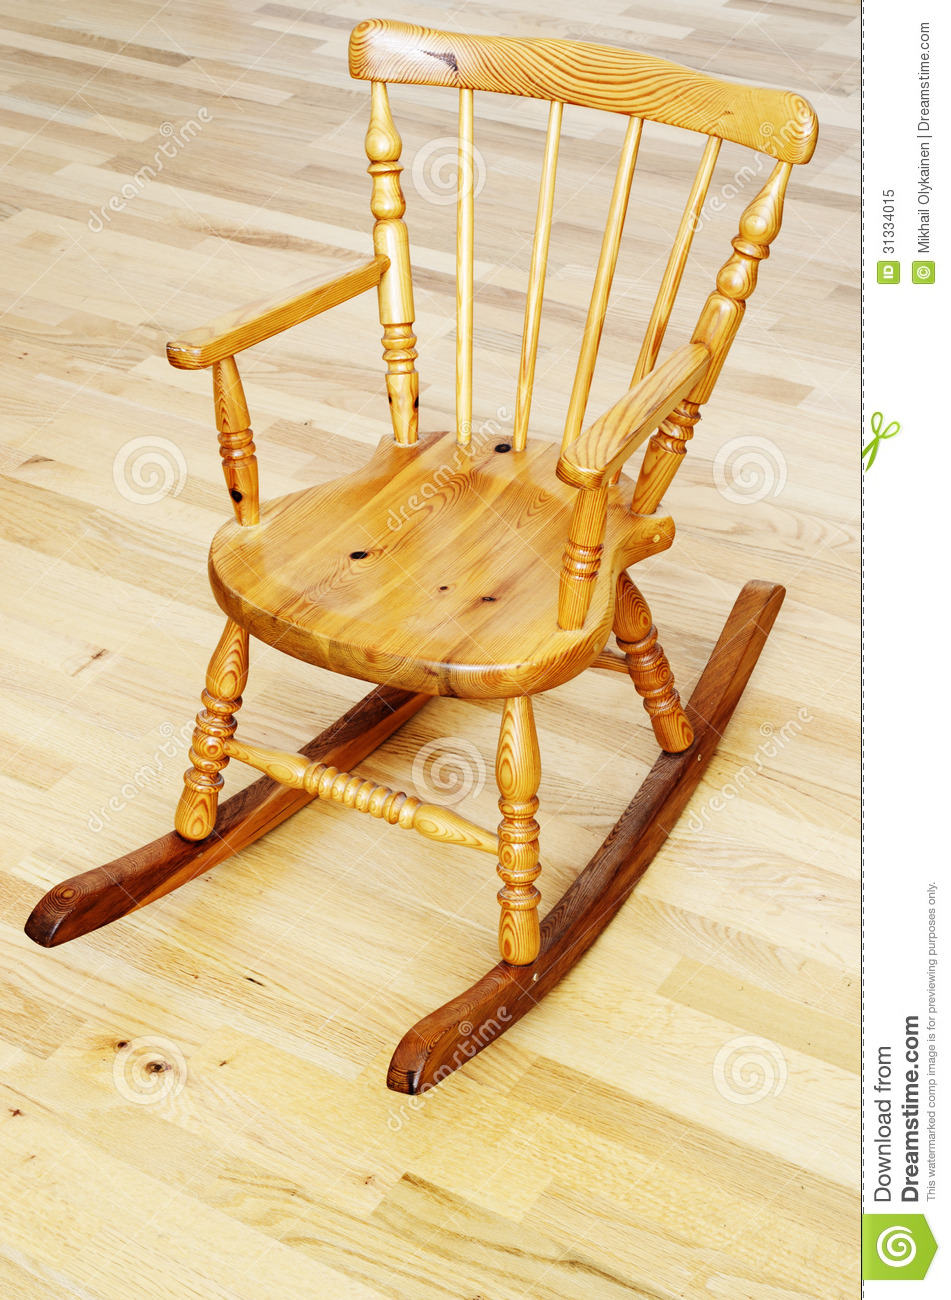 Baby Carved Wooden Rocking Chair Royalty Free Stock Photo - Image ...